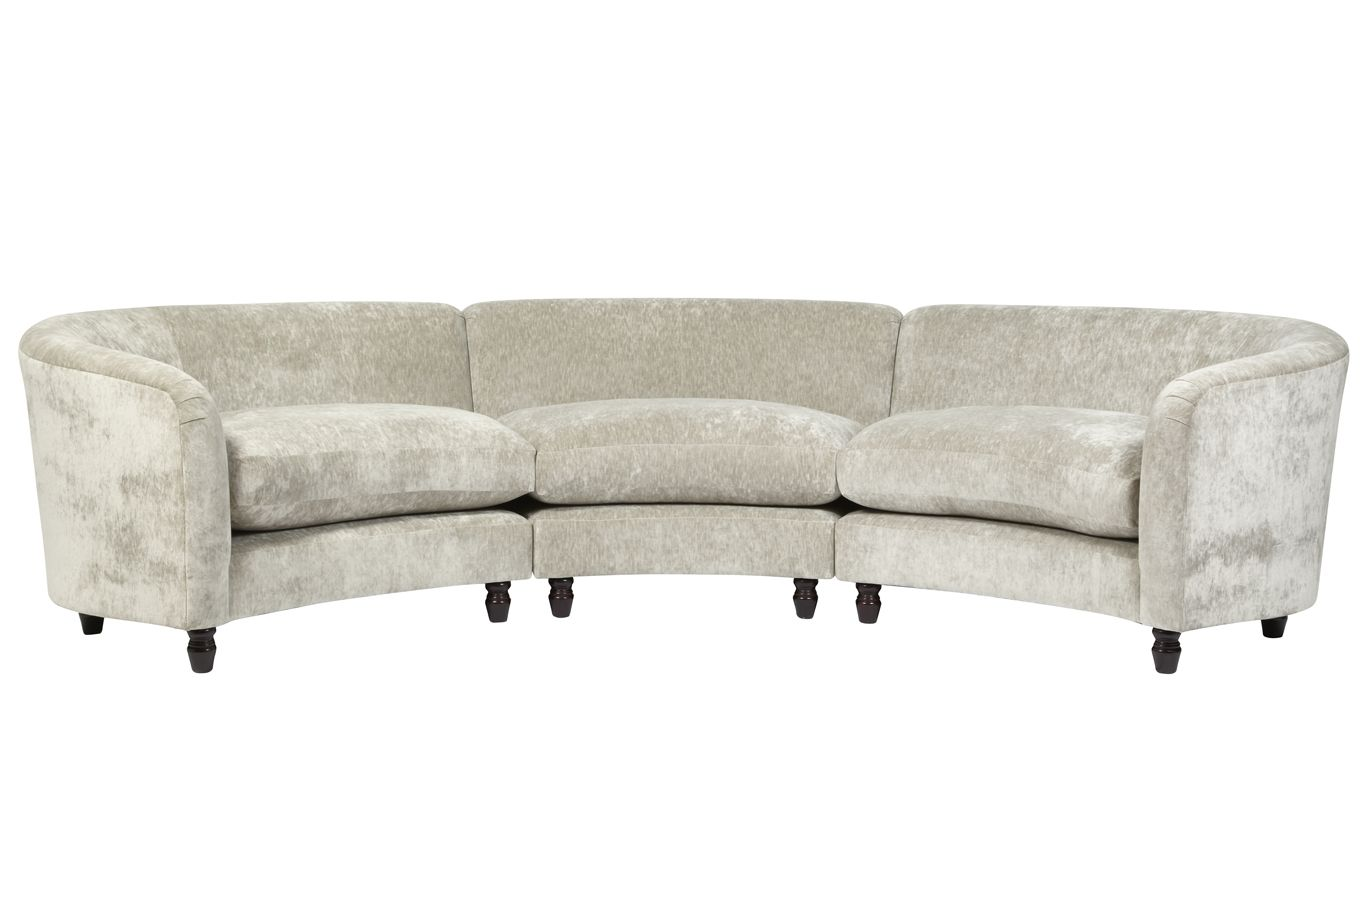 Sofas Laura Ashley Furniture Sofa Repair Gurgaon Like Elements Of This Astoria Upholstered Large